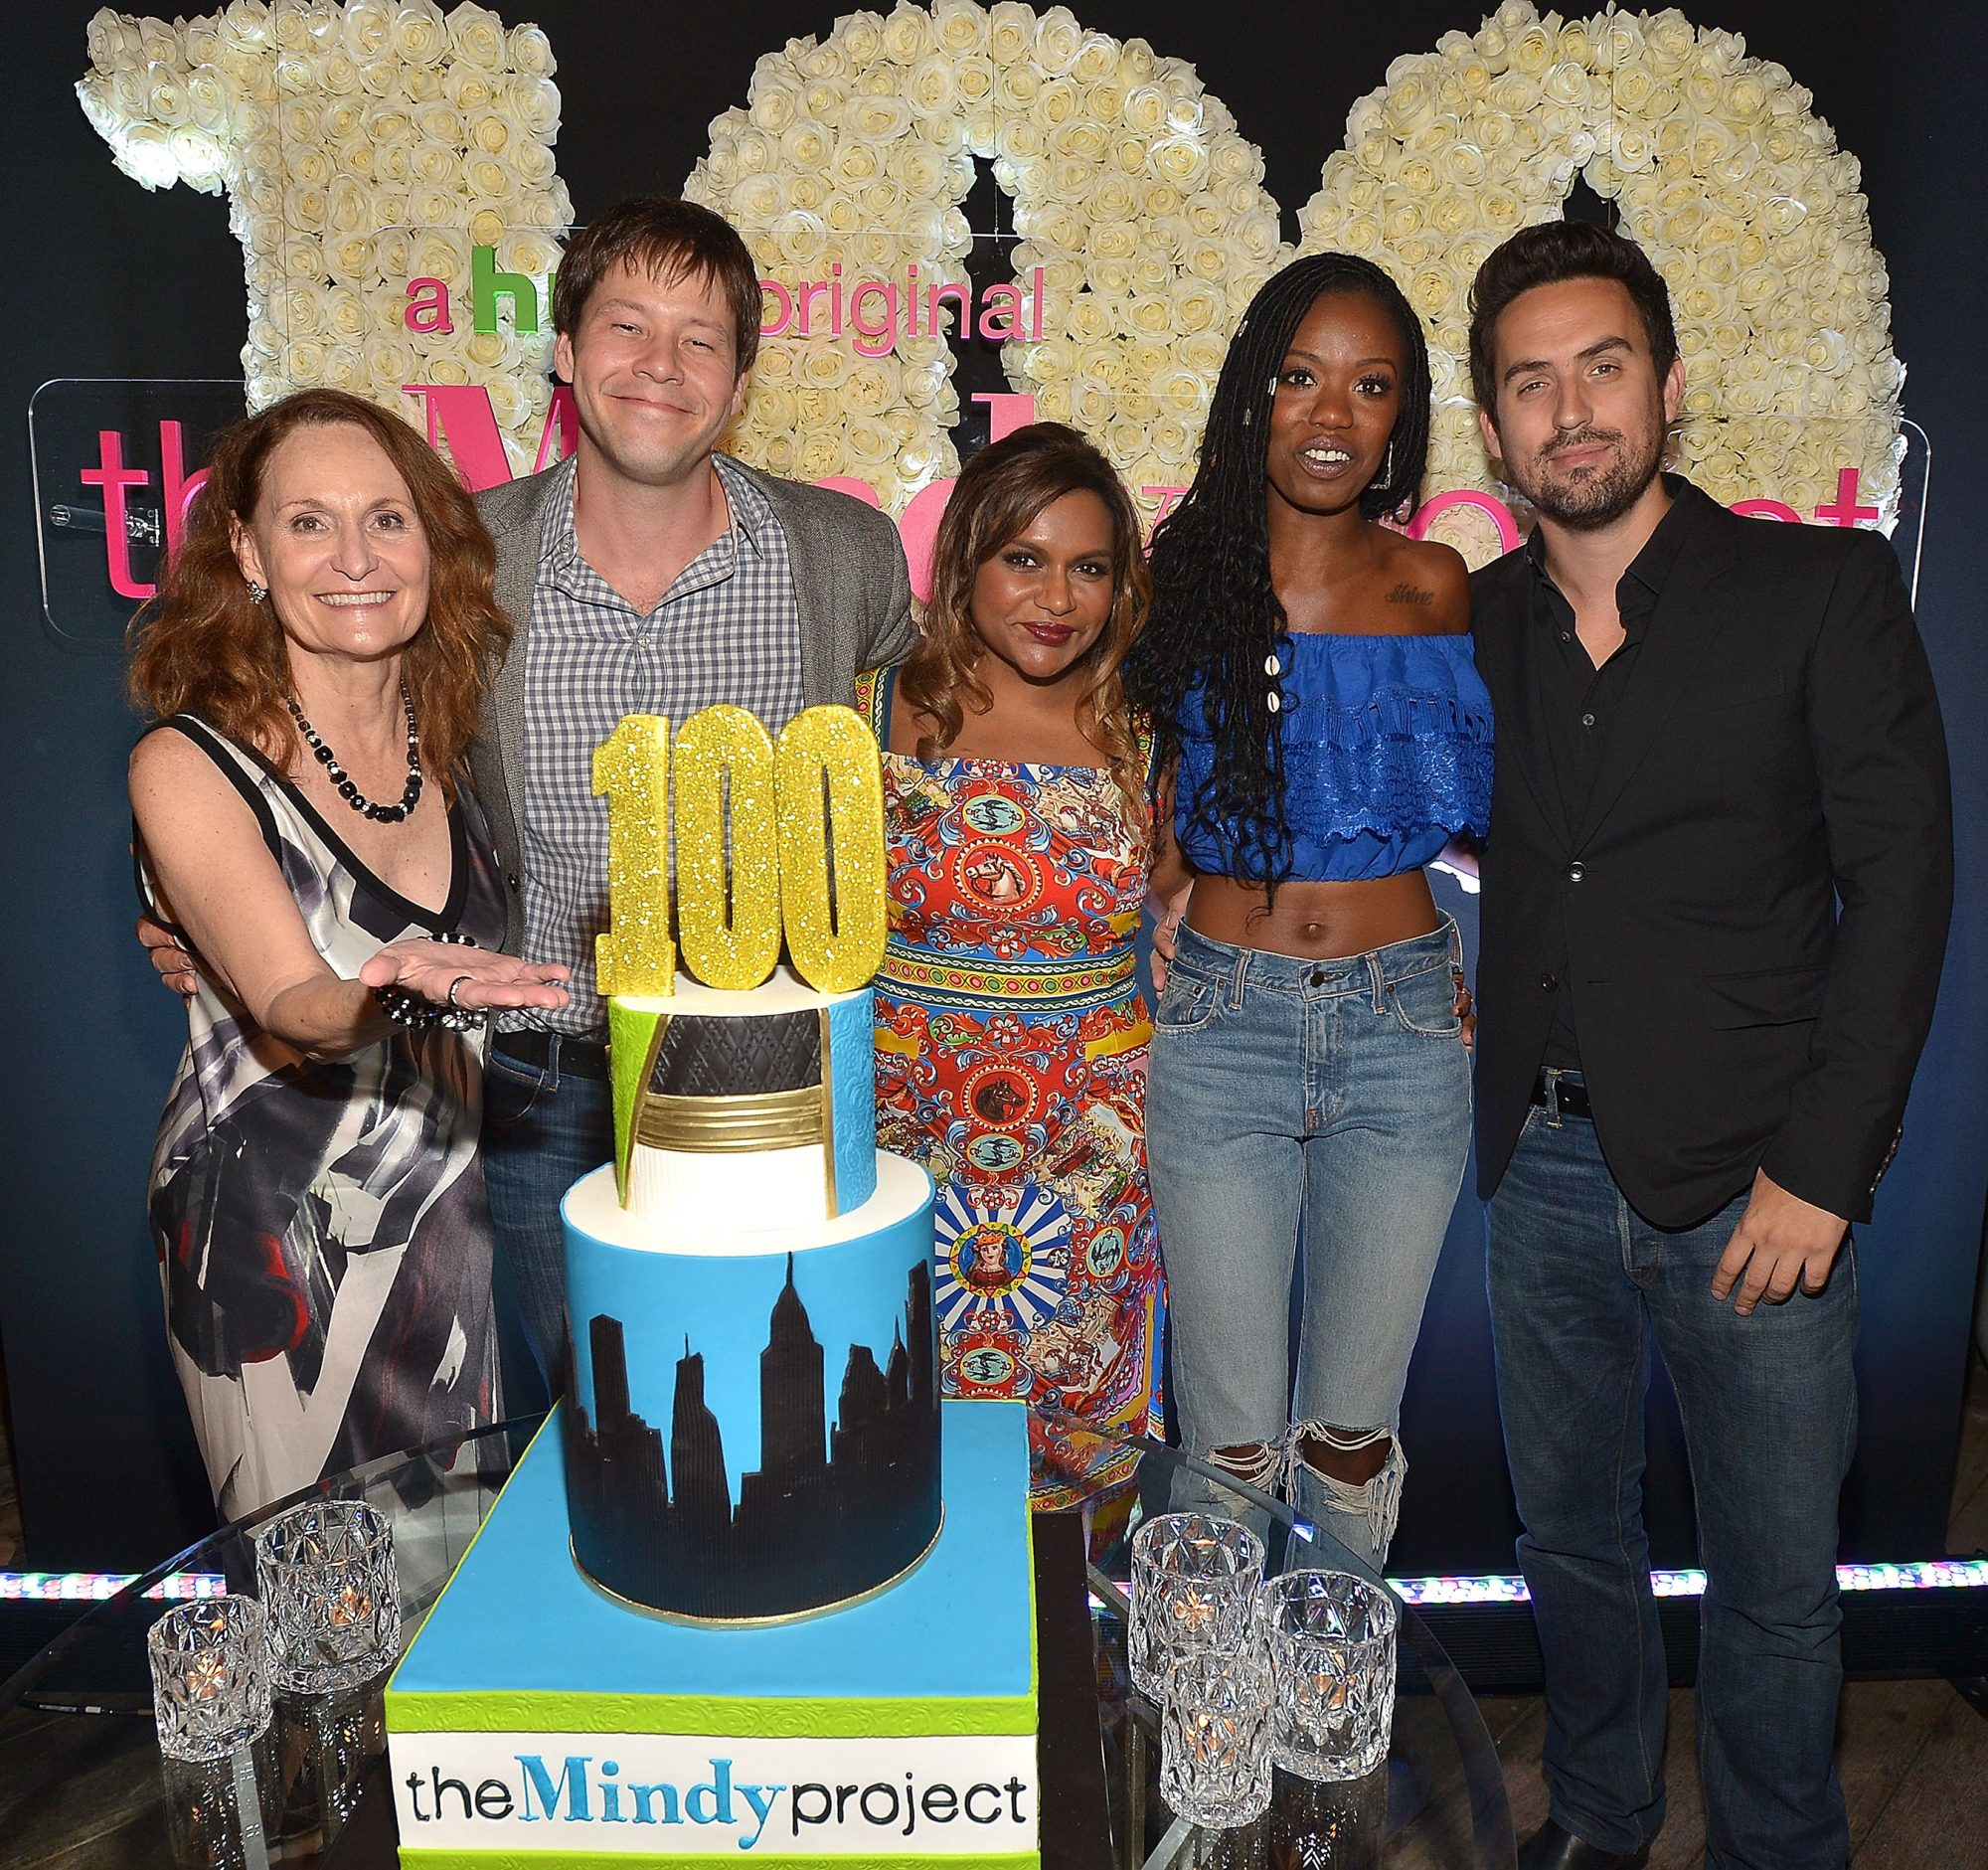 The Mindy Project 100th Episode Party